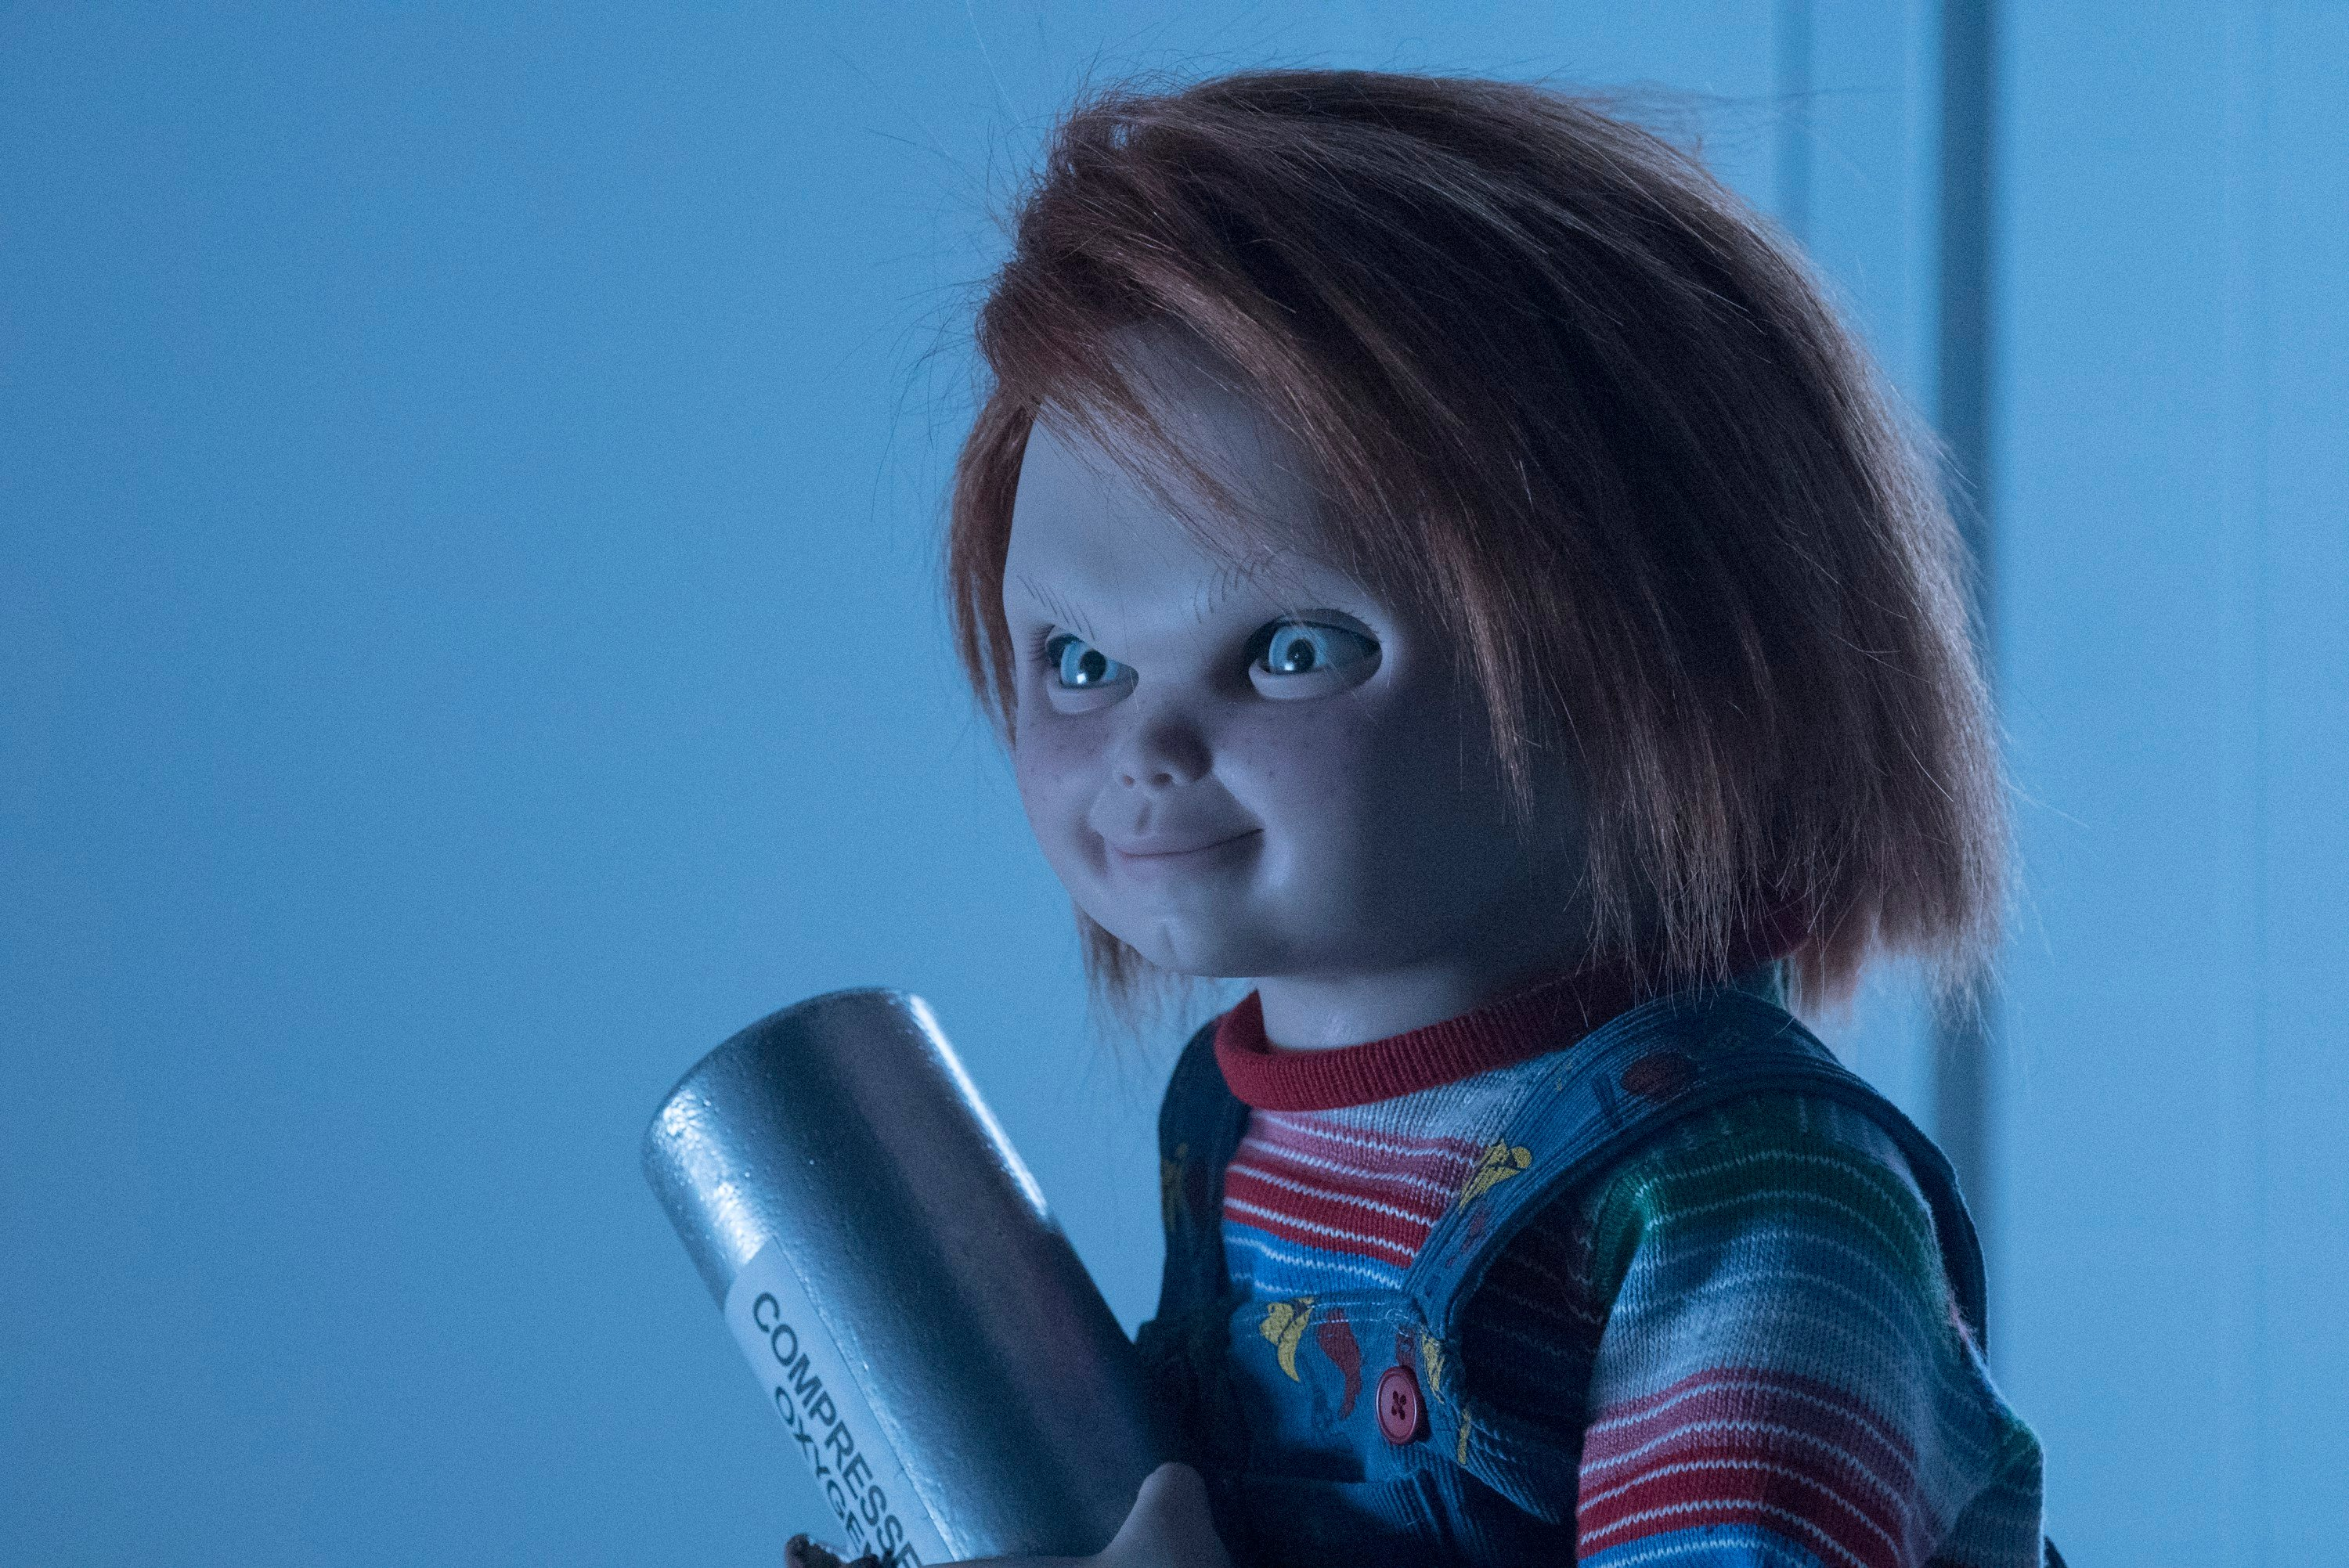 The Devil Doll Flashes A Manic Grin In First Official Image For Cult Of Chucky